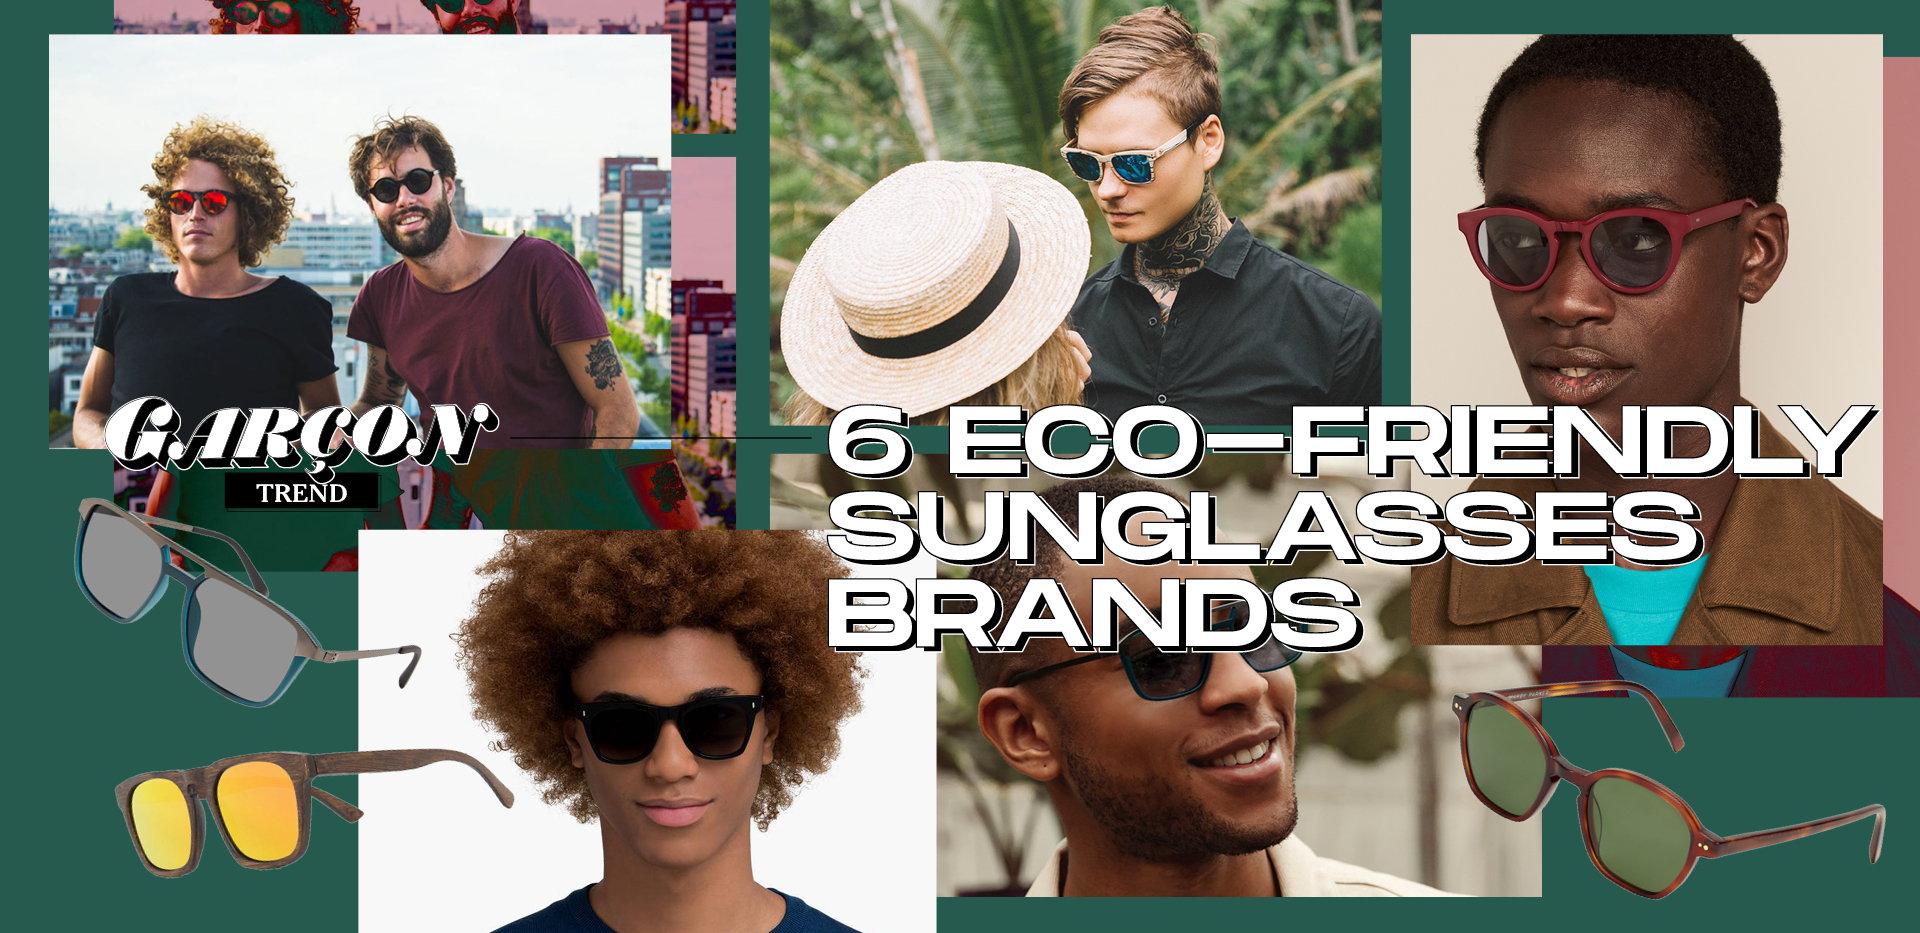 6 Eco-Friendly Sunglasses Brands